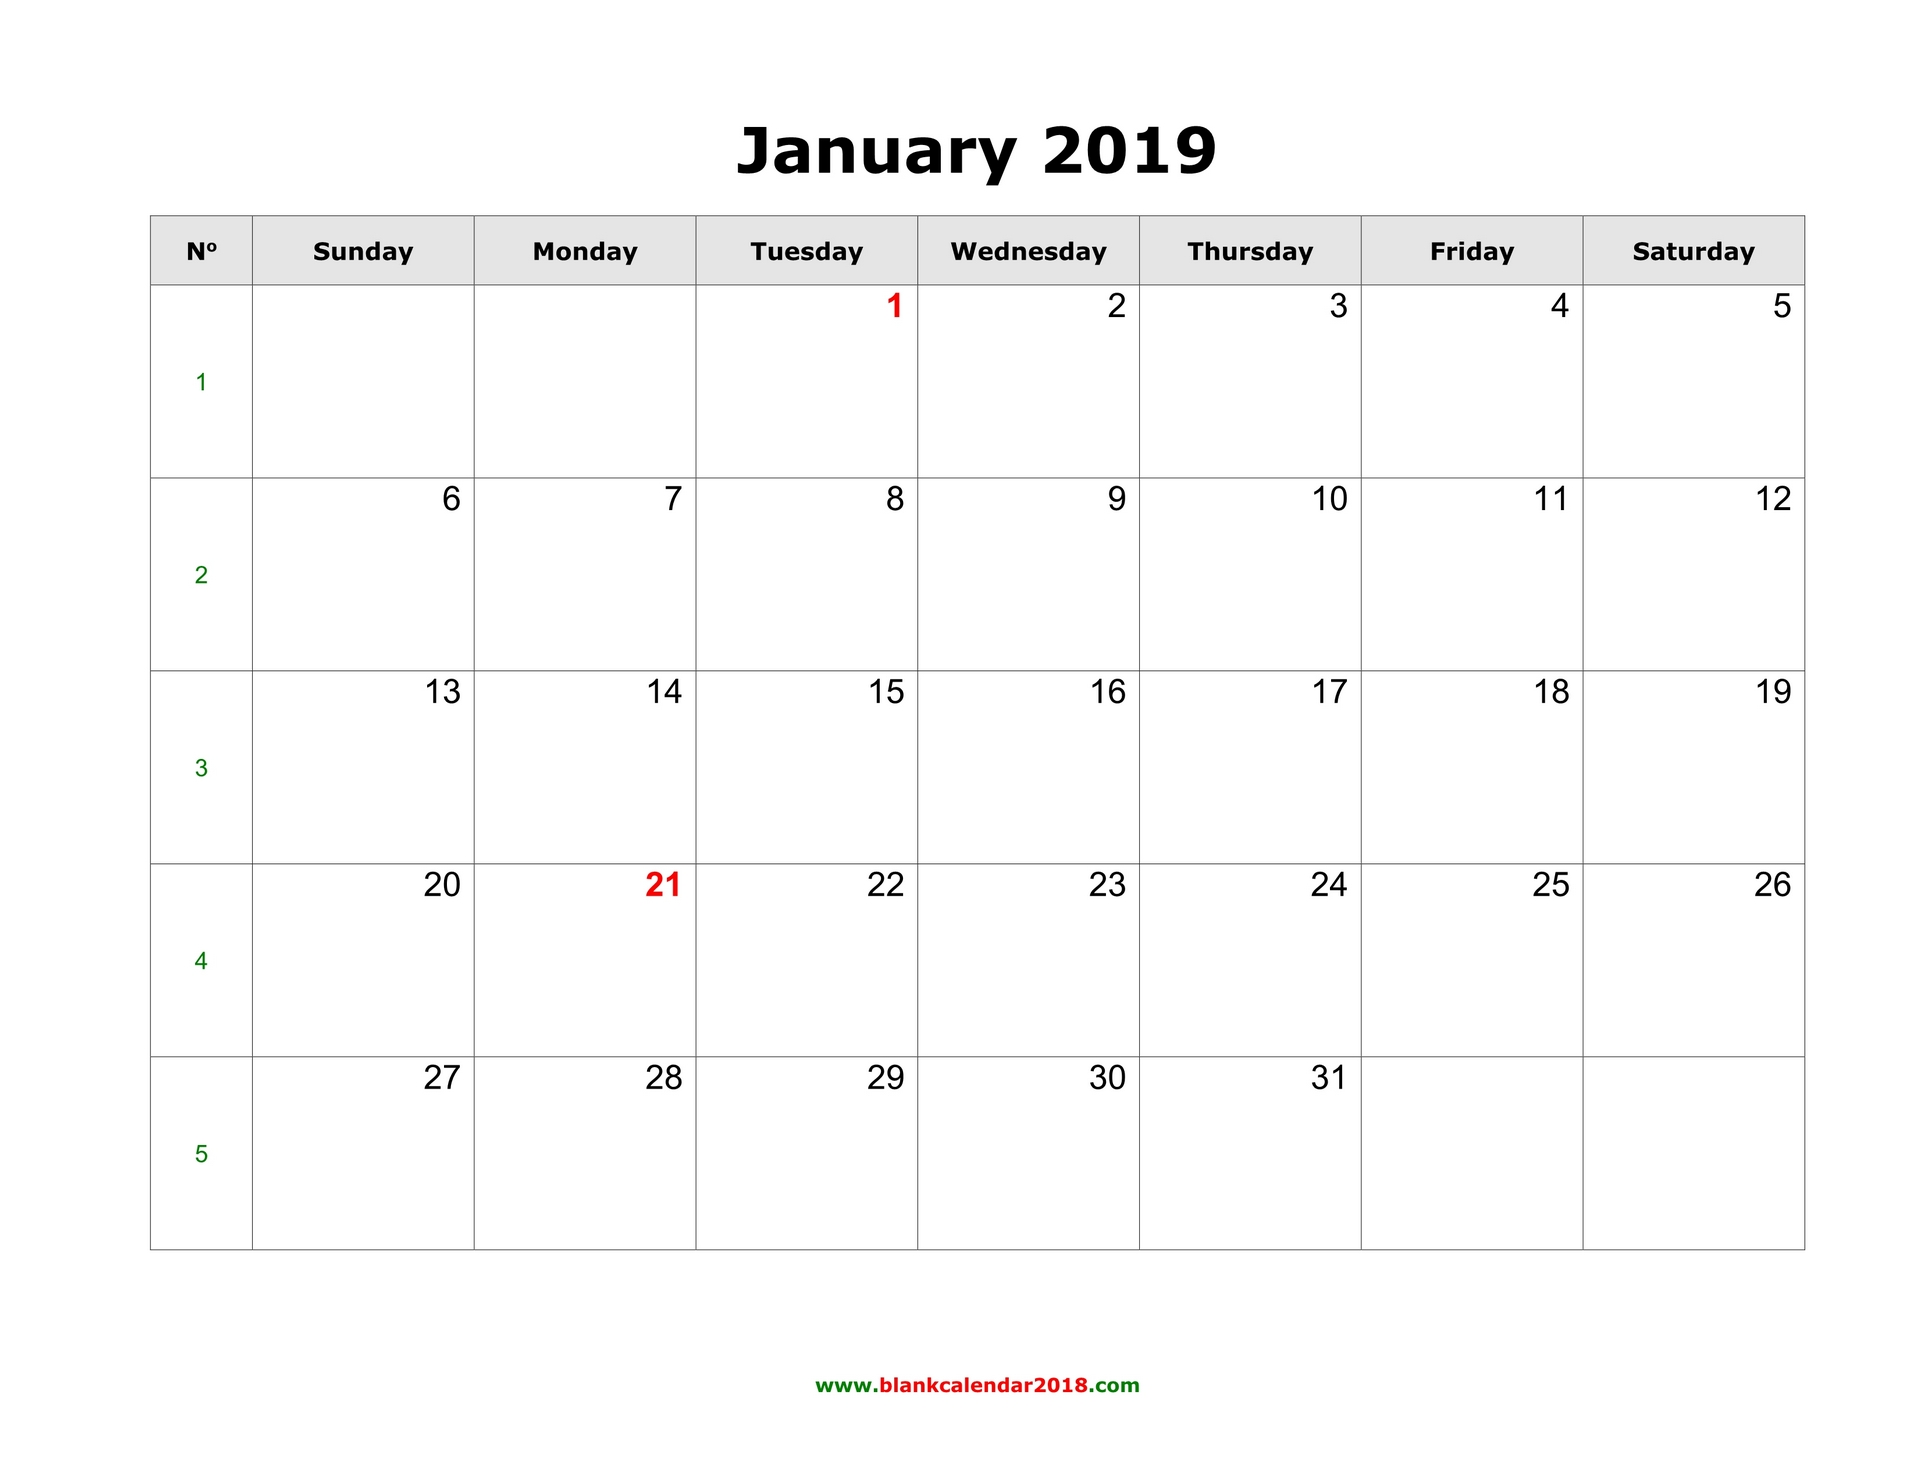 Empty Schedule Calendar 2019 January Blank Calendar for January 2019